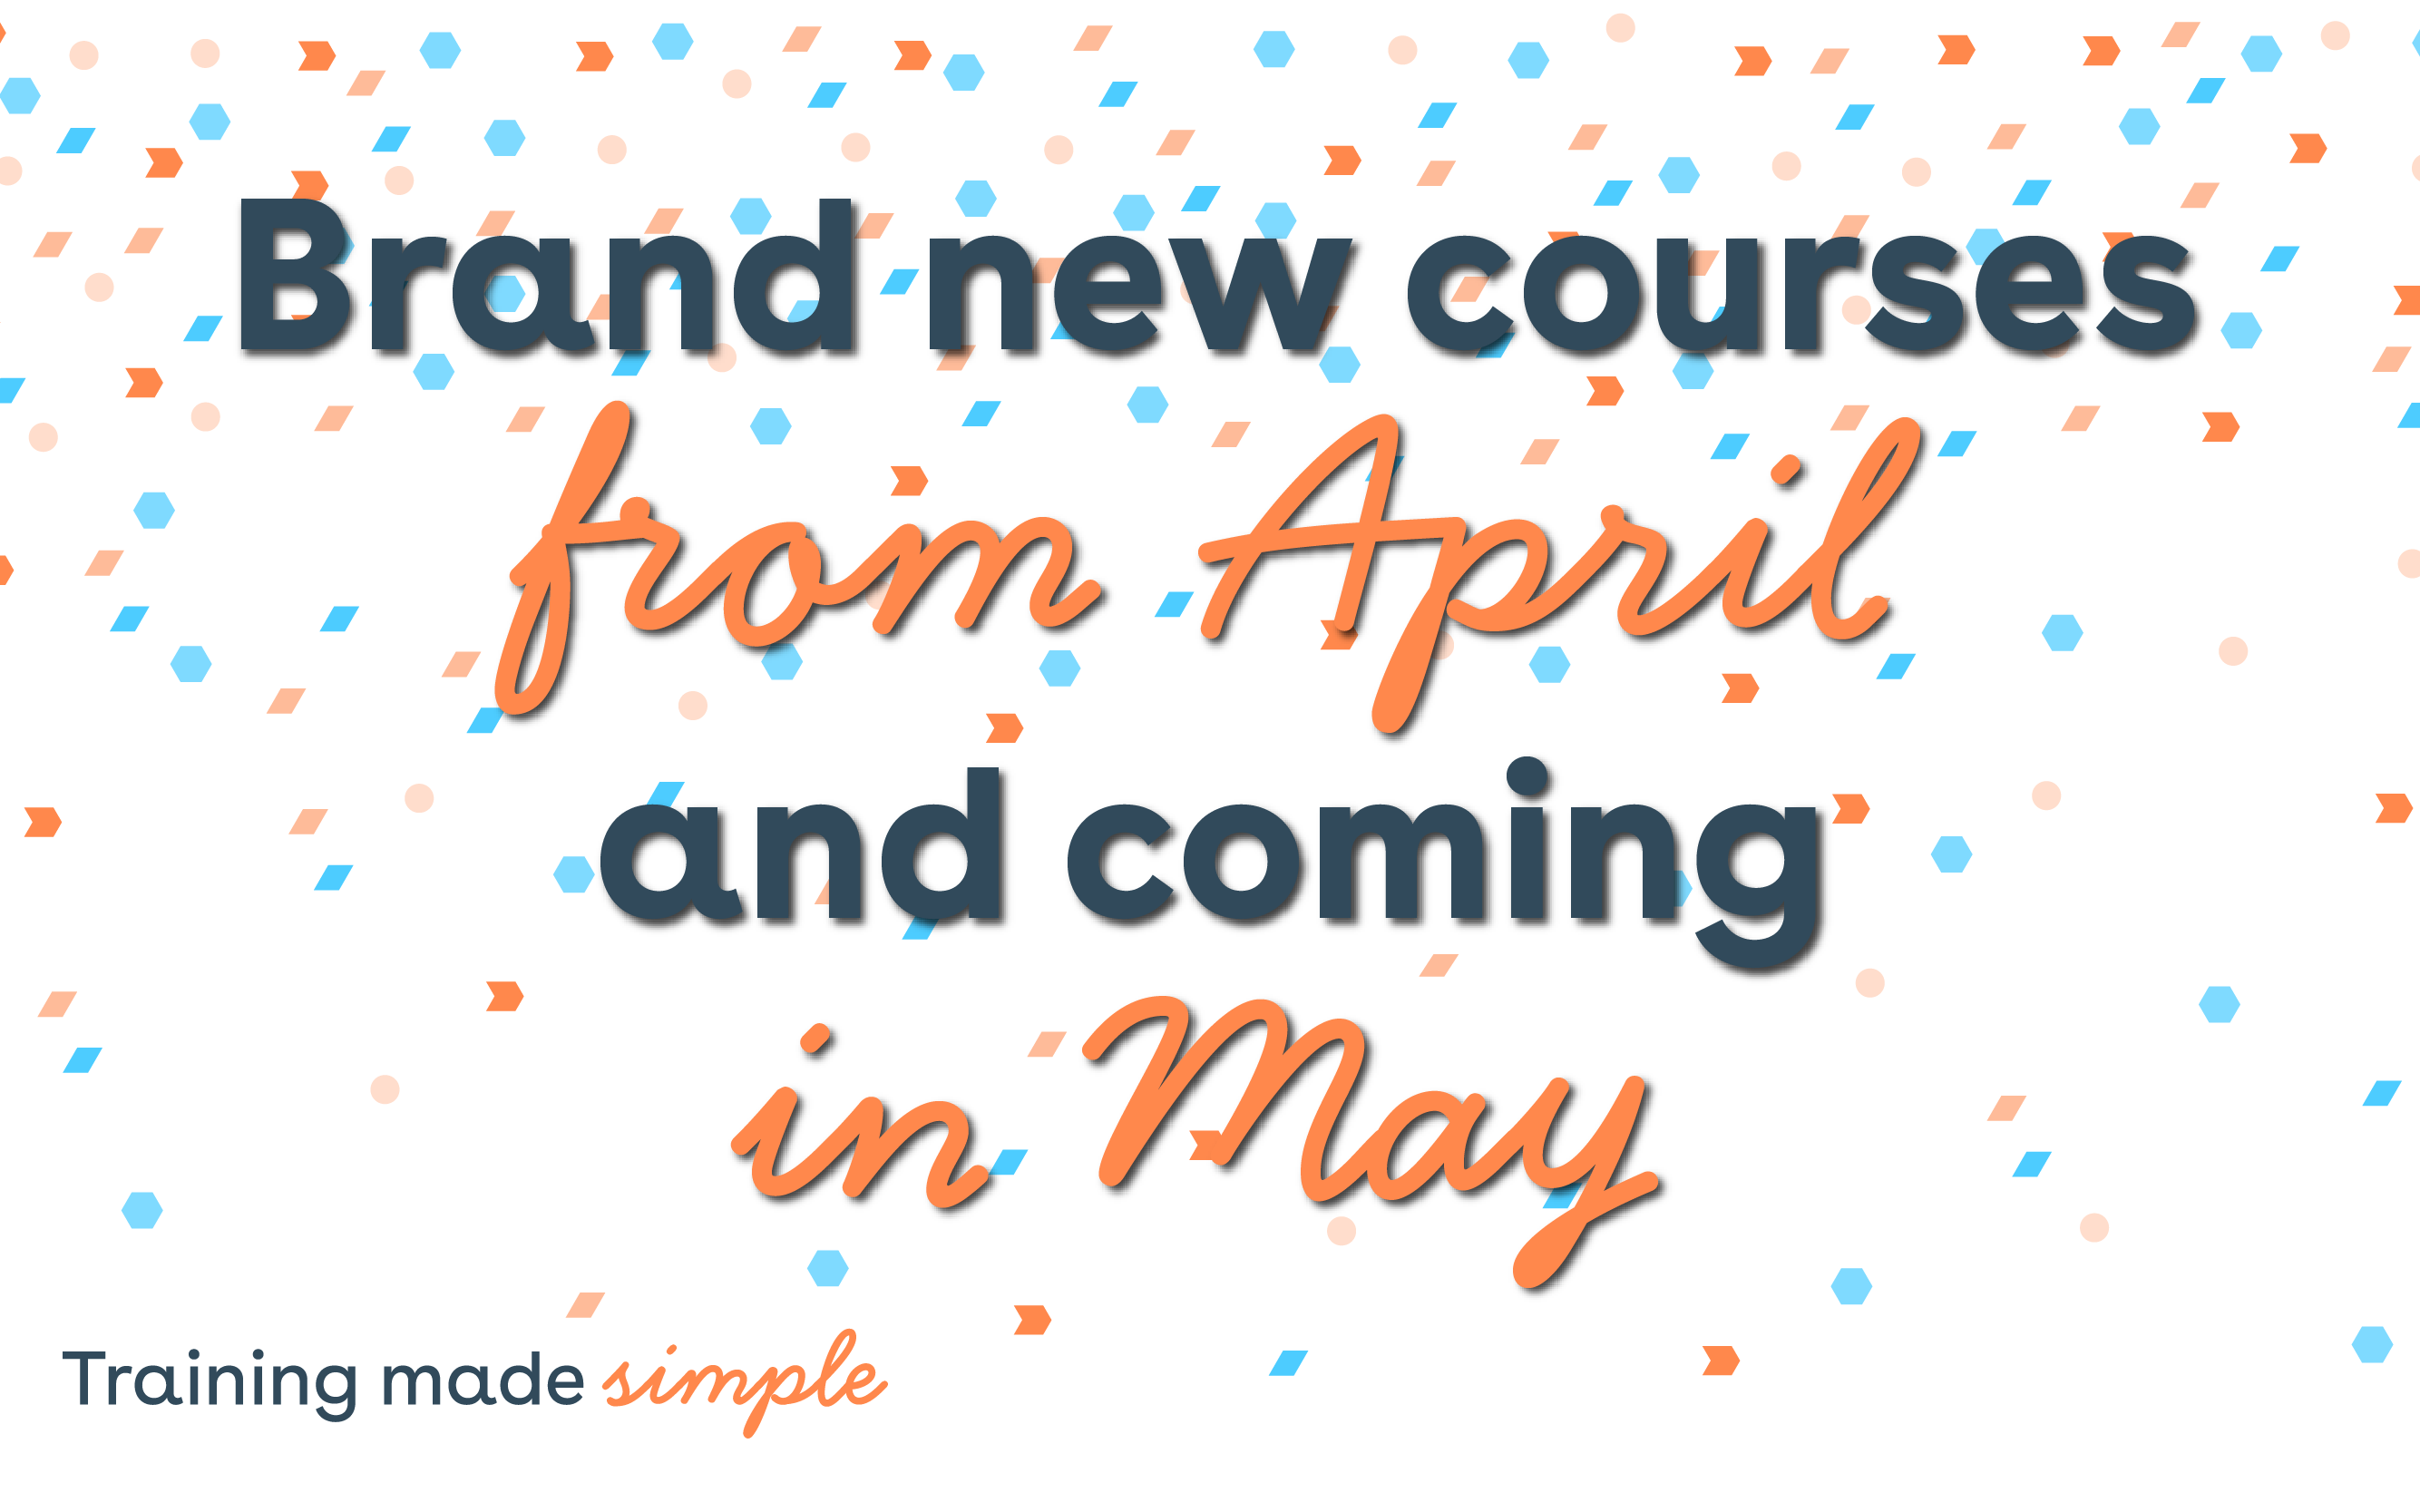 April & May course announcements